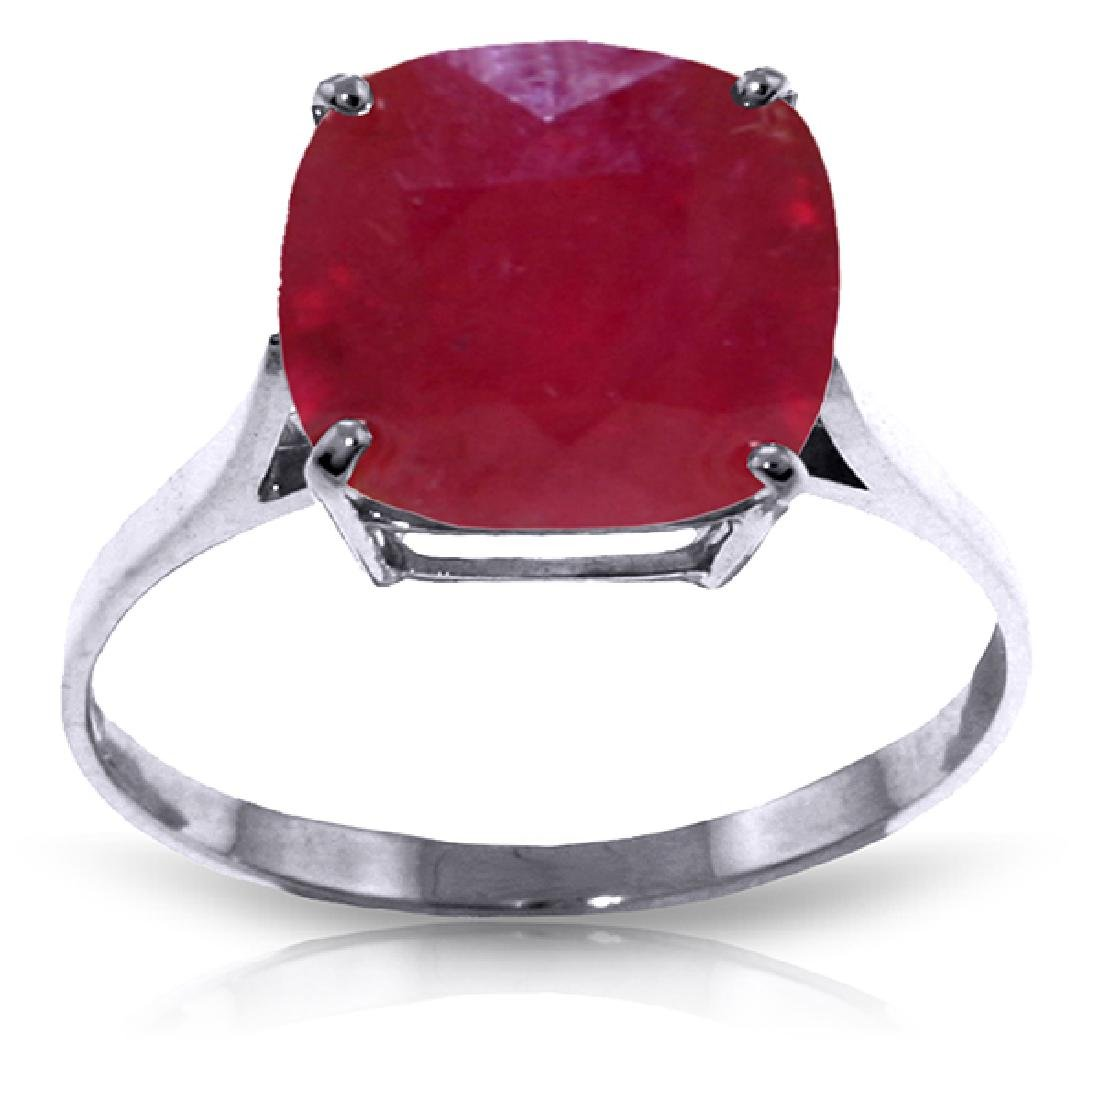 Genuine 6.75 ctw Ruby Ring Jewelry 14KT White Gold -